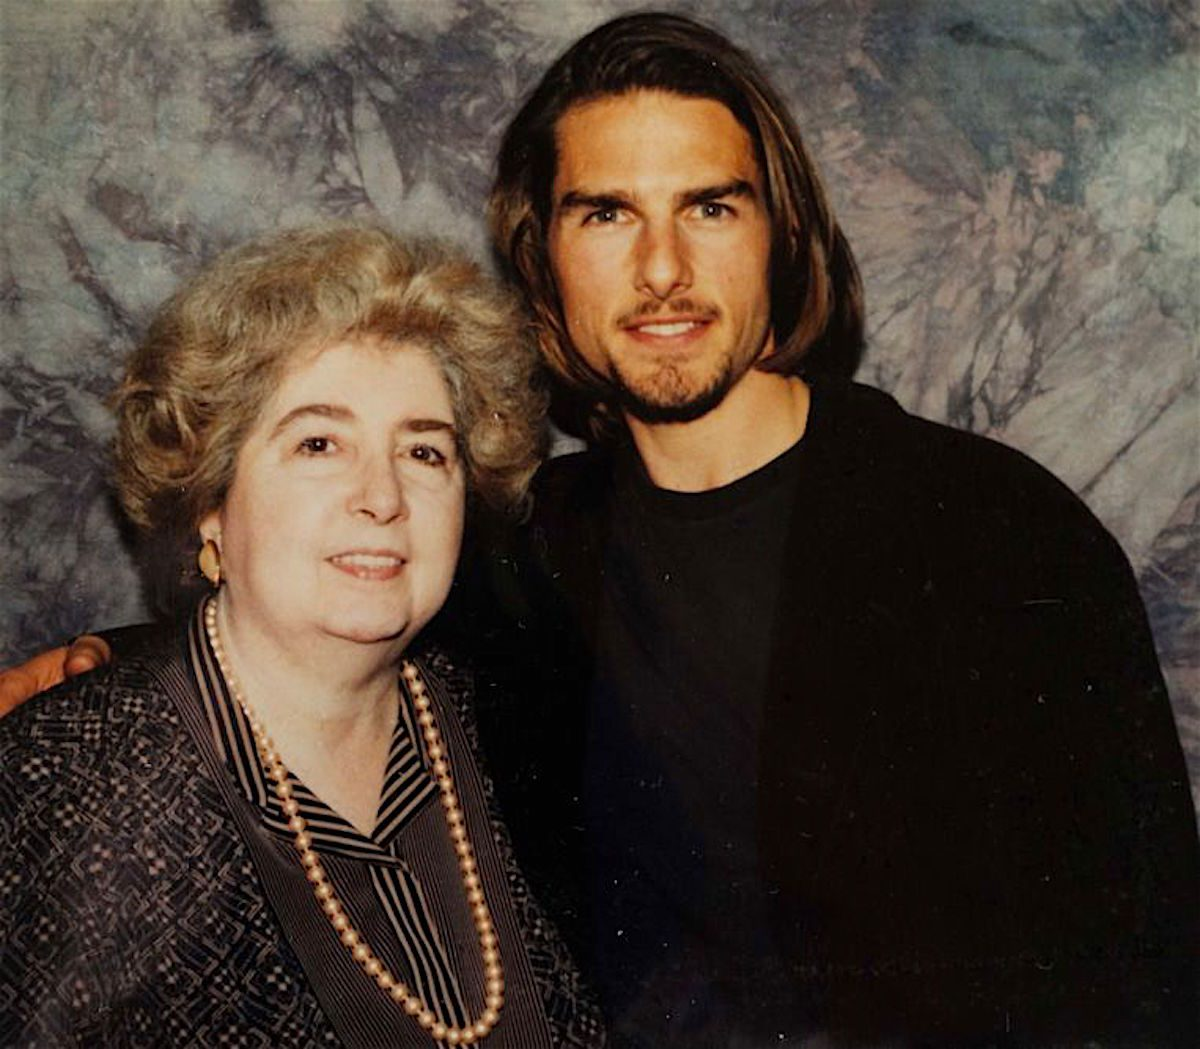 Tom Cruise, Maria Snoeys-Lagler, Hollywood